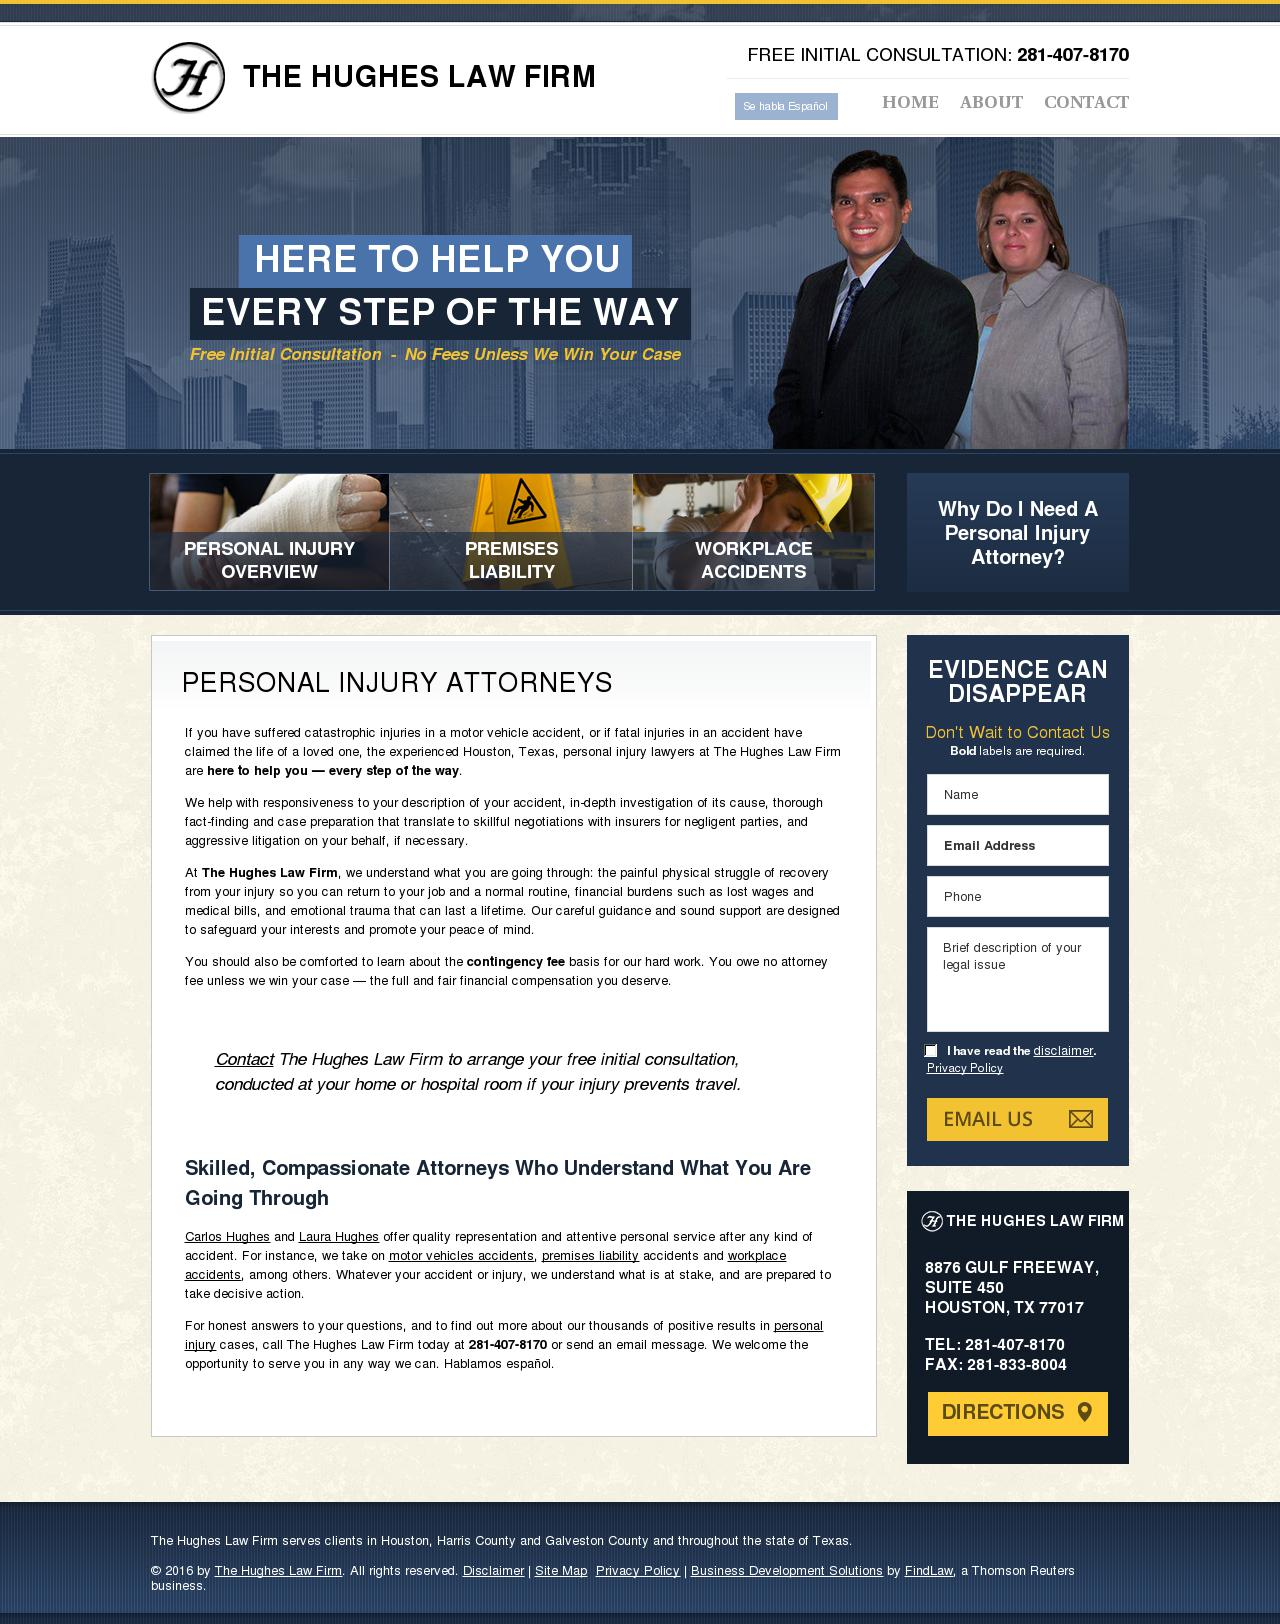 The Hughes Law Firm - Houston TX Lawyers